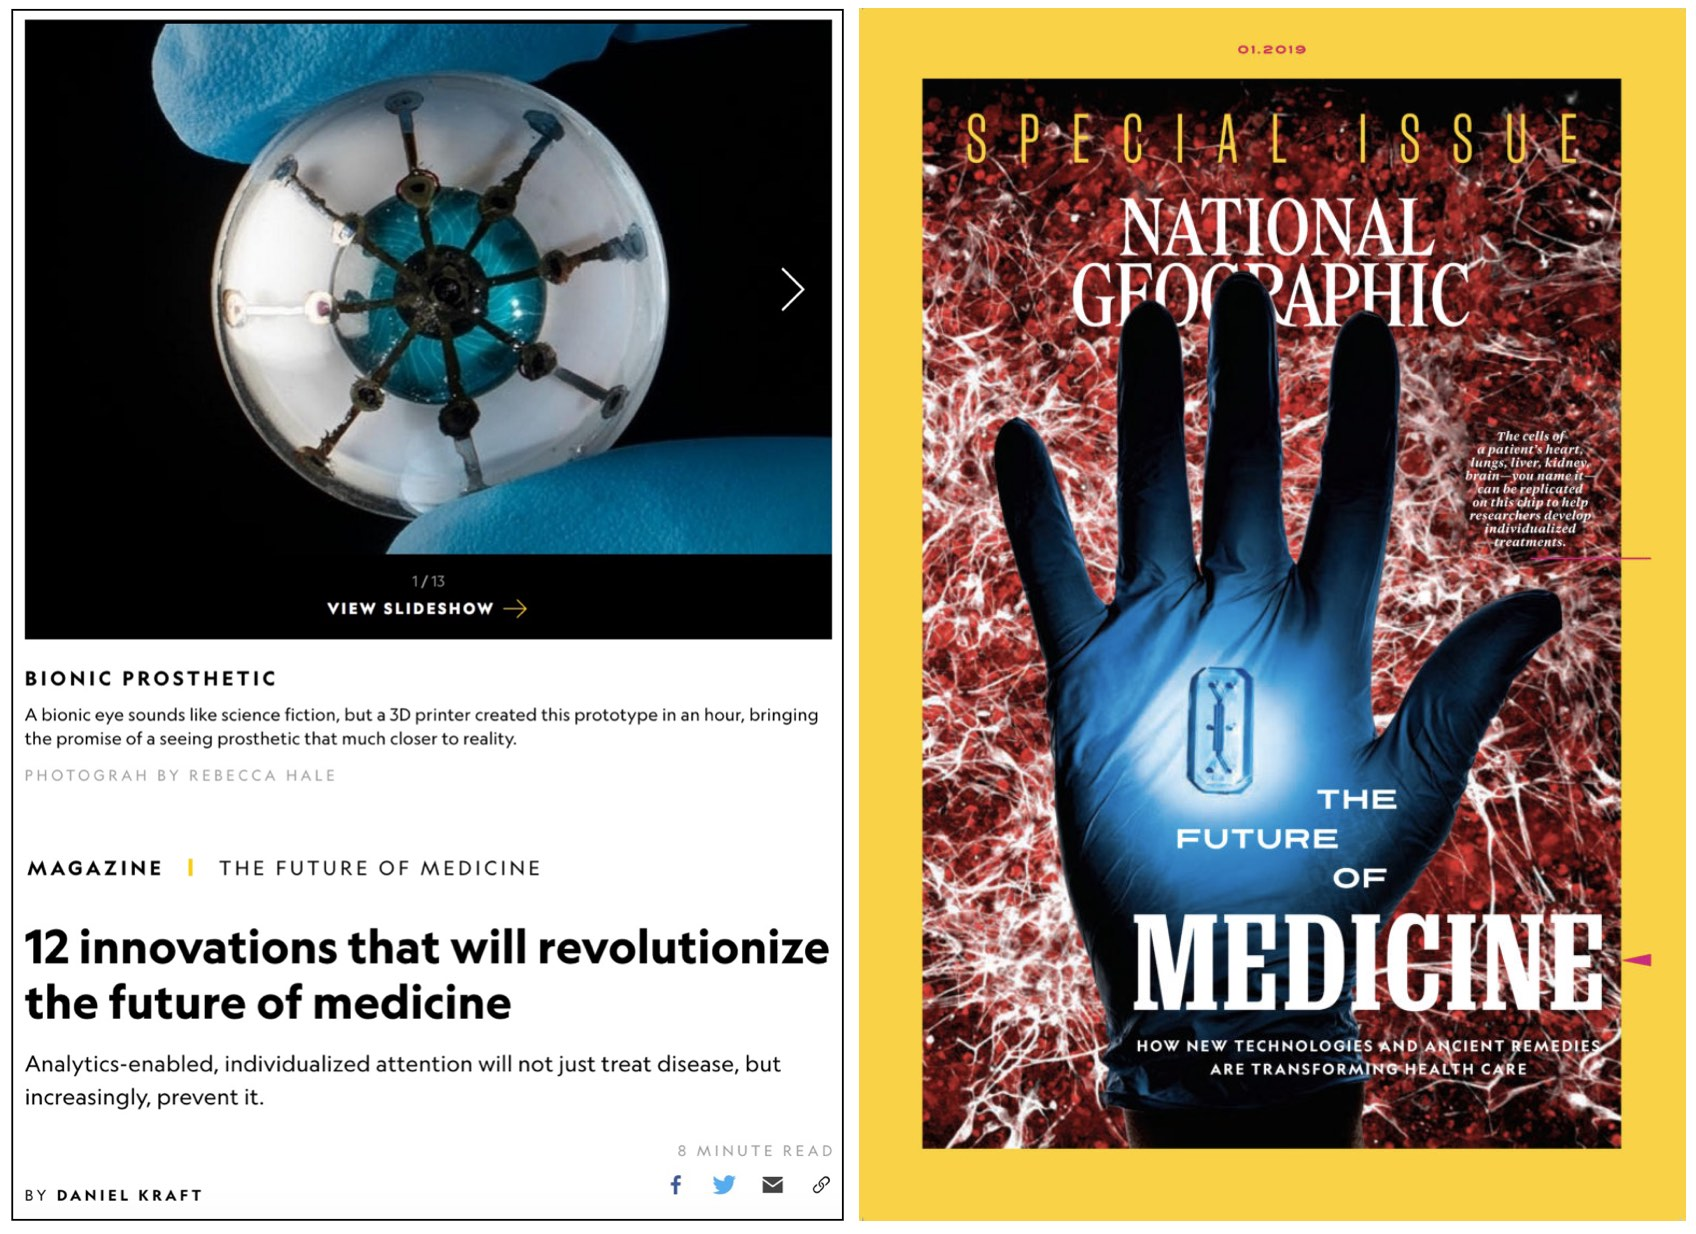 Daniel wrote the  opening article  for the National Geographic Magazine's special issue  'The Future of Medicine' .